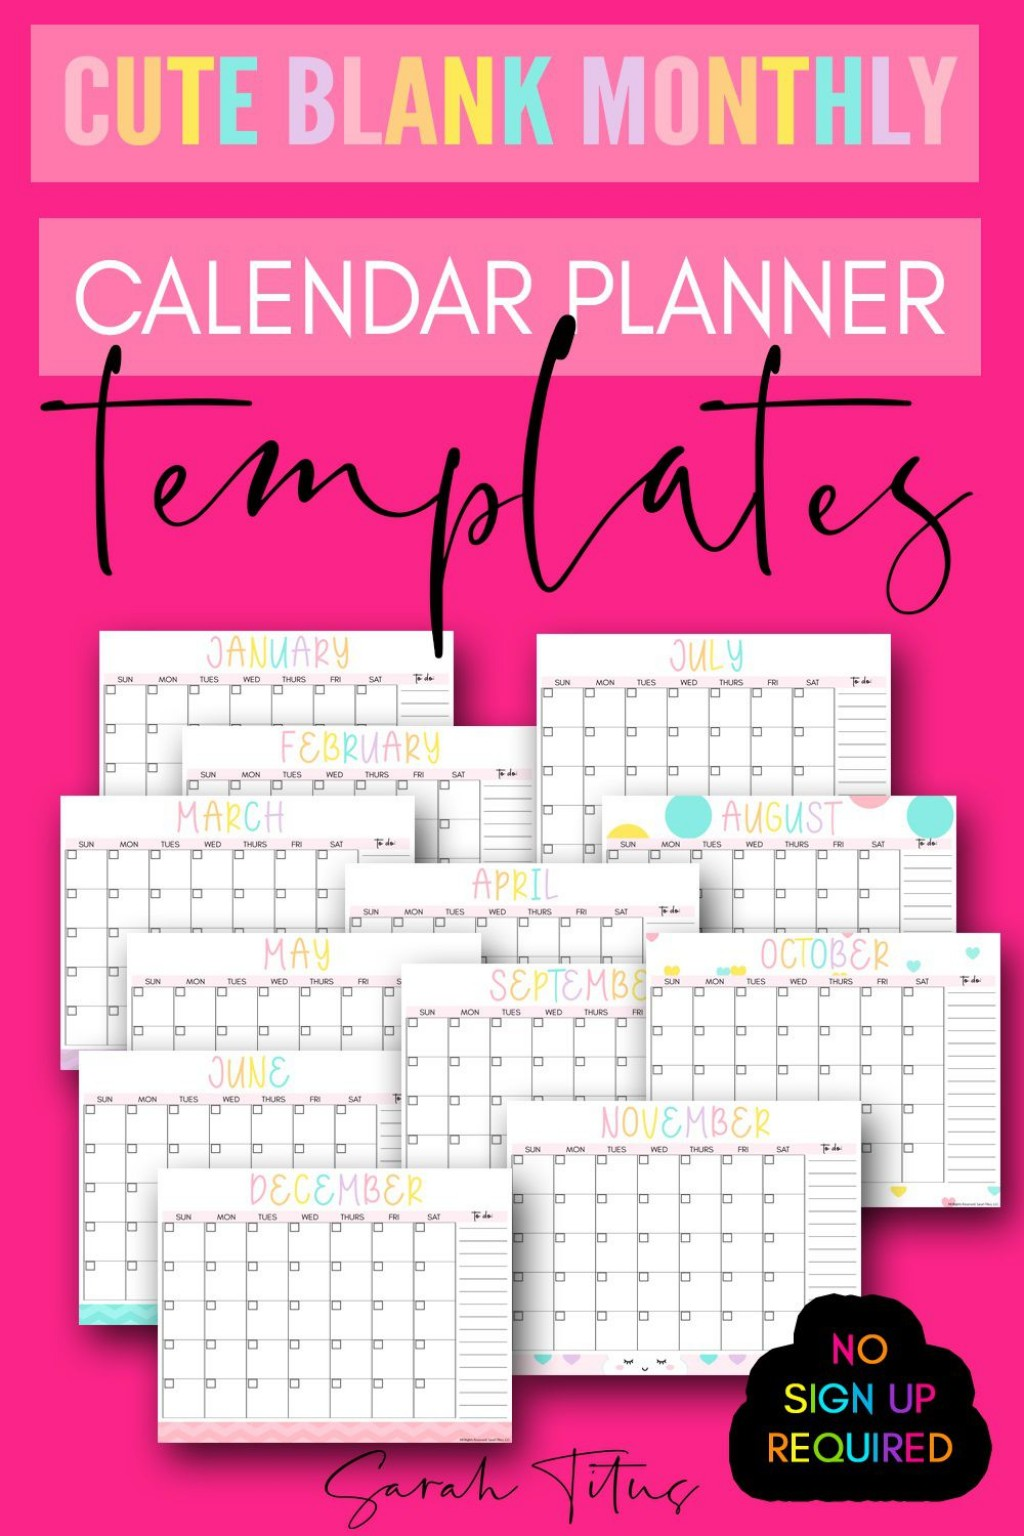 007 Fascinating Printable Blank Monthly Calendar Template Image  PdfLarge